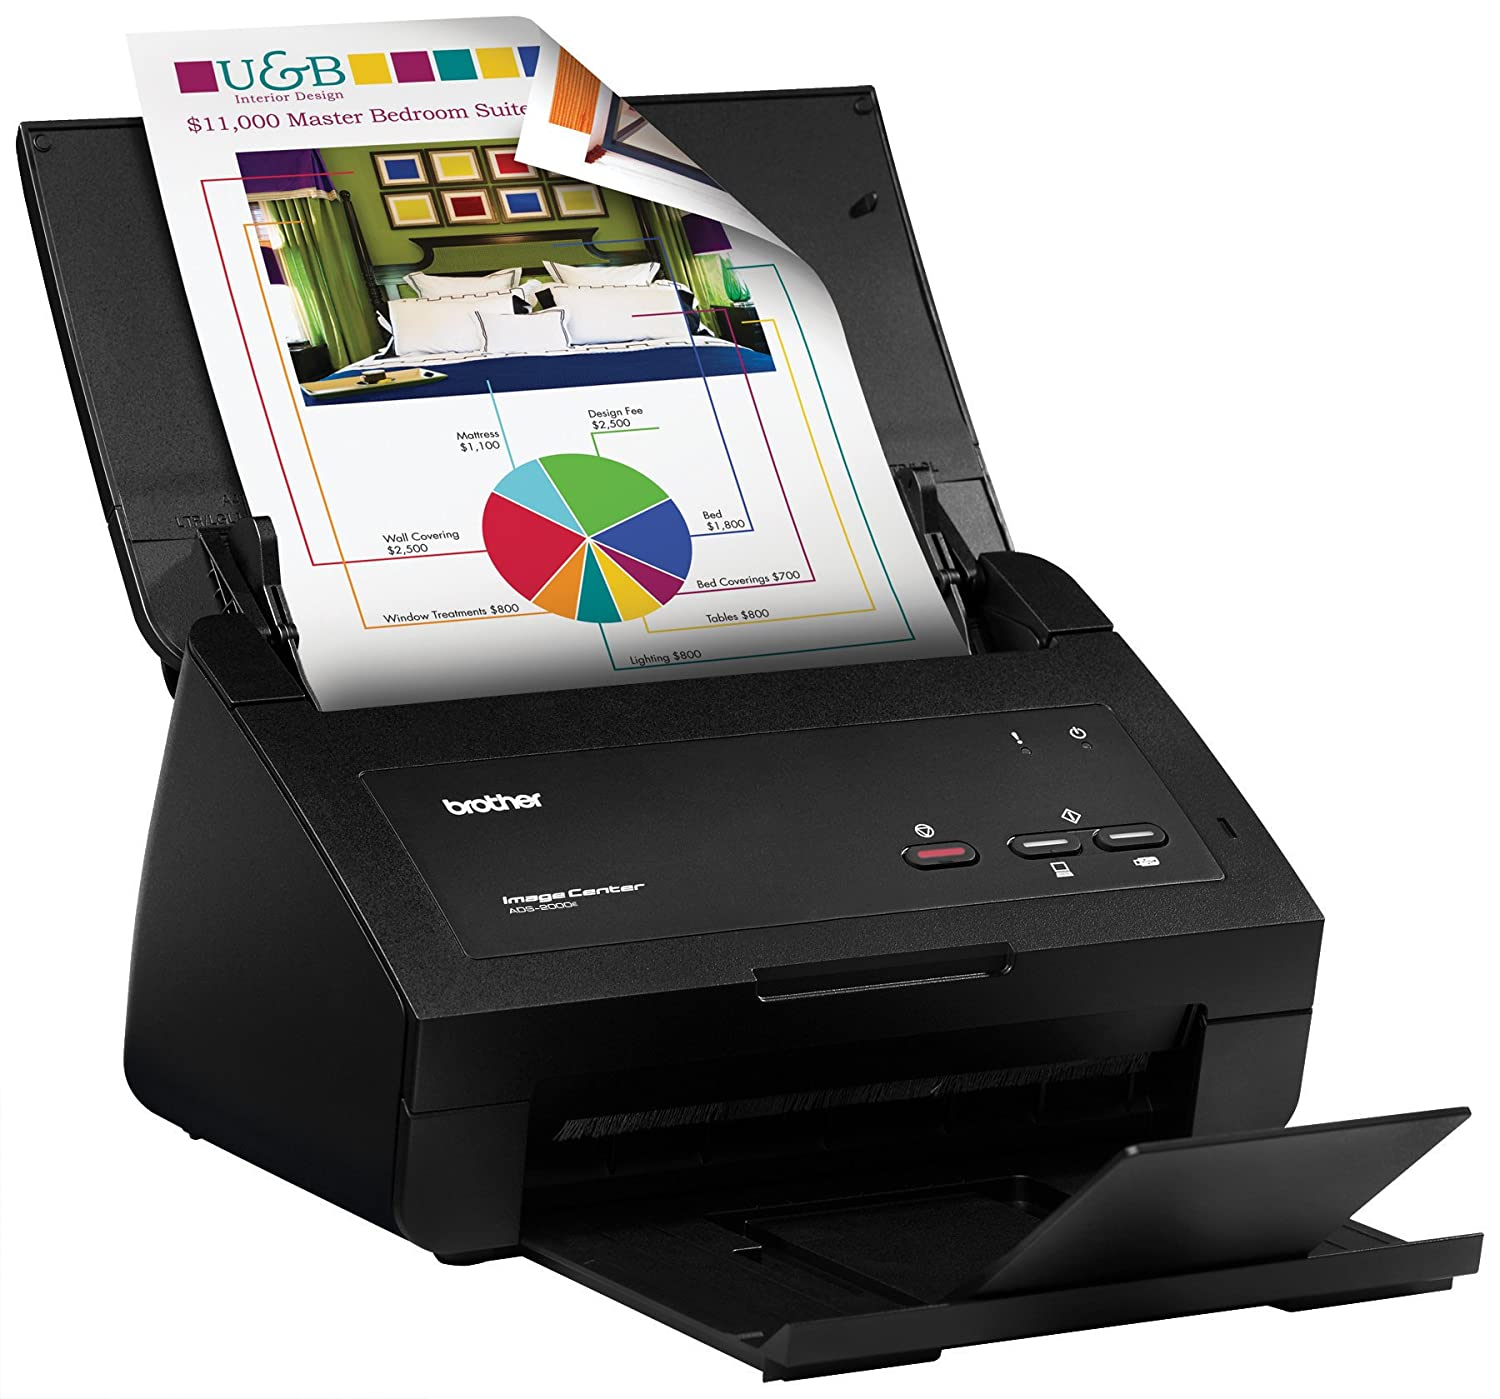 feeder reviews scanner color expert service flatbed imaging scanning features asp peripherals photo photos with and duplex panasonic compare for user document multiple scanners kv